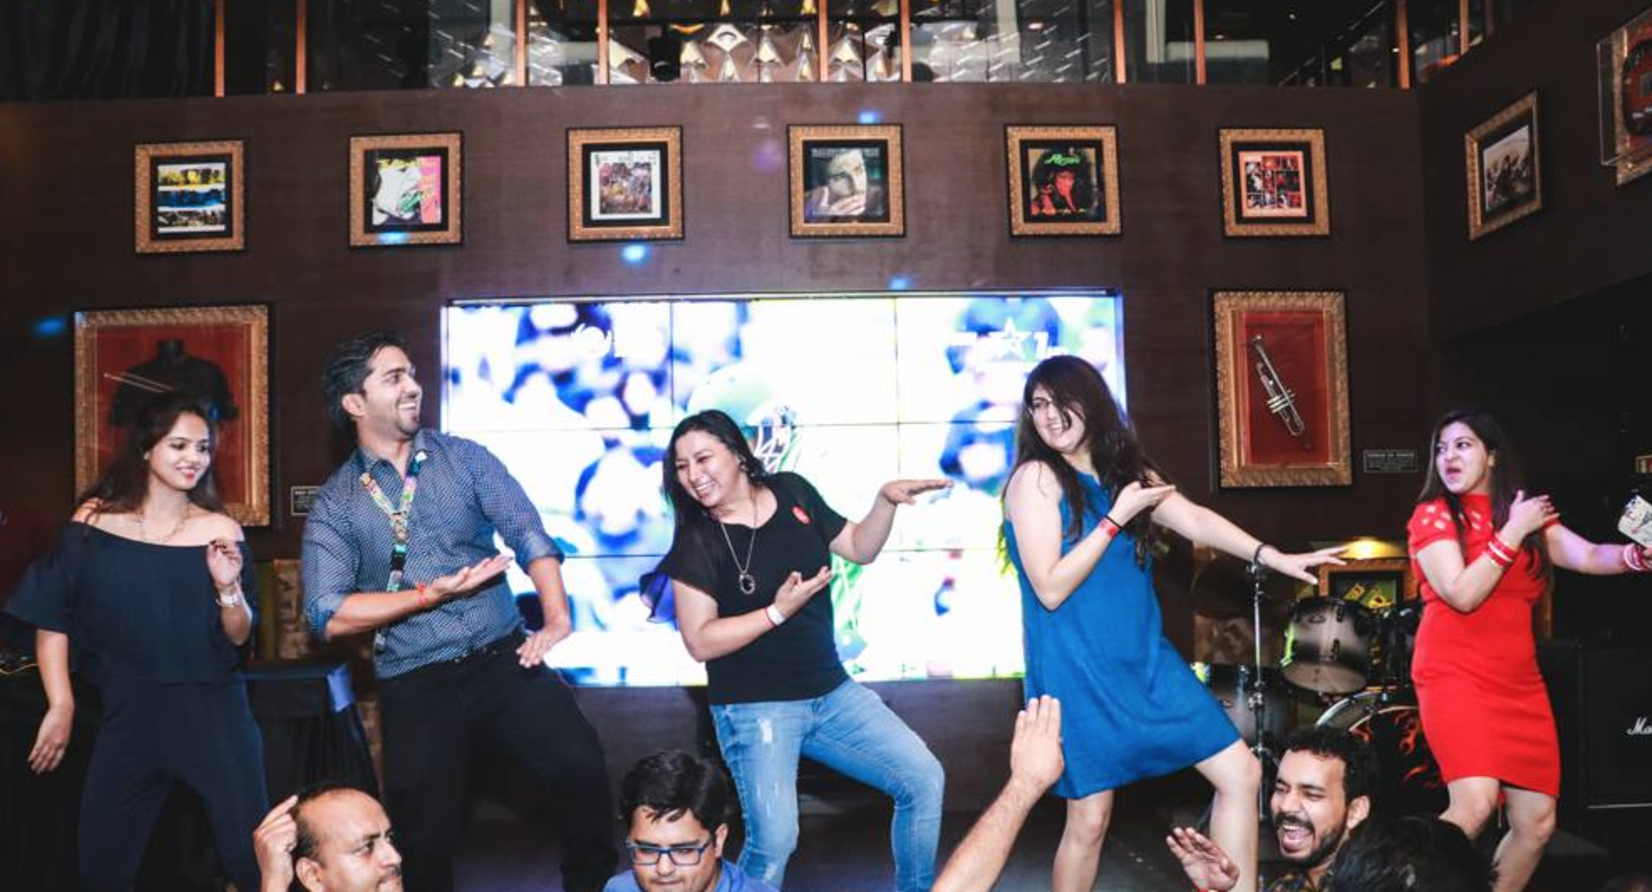 Bandra West Is Hosting The Next Great Indian Pub Crawl And Ya'll Are Invited!